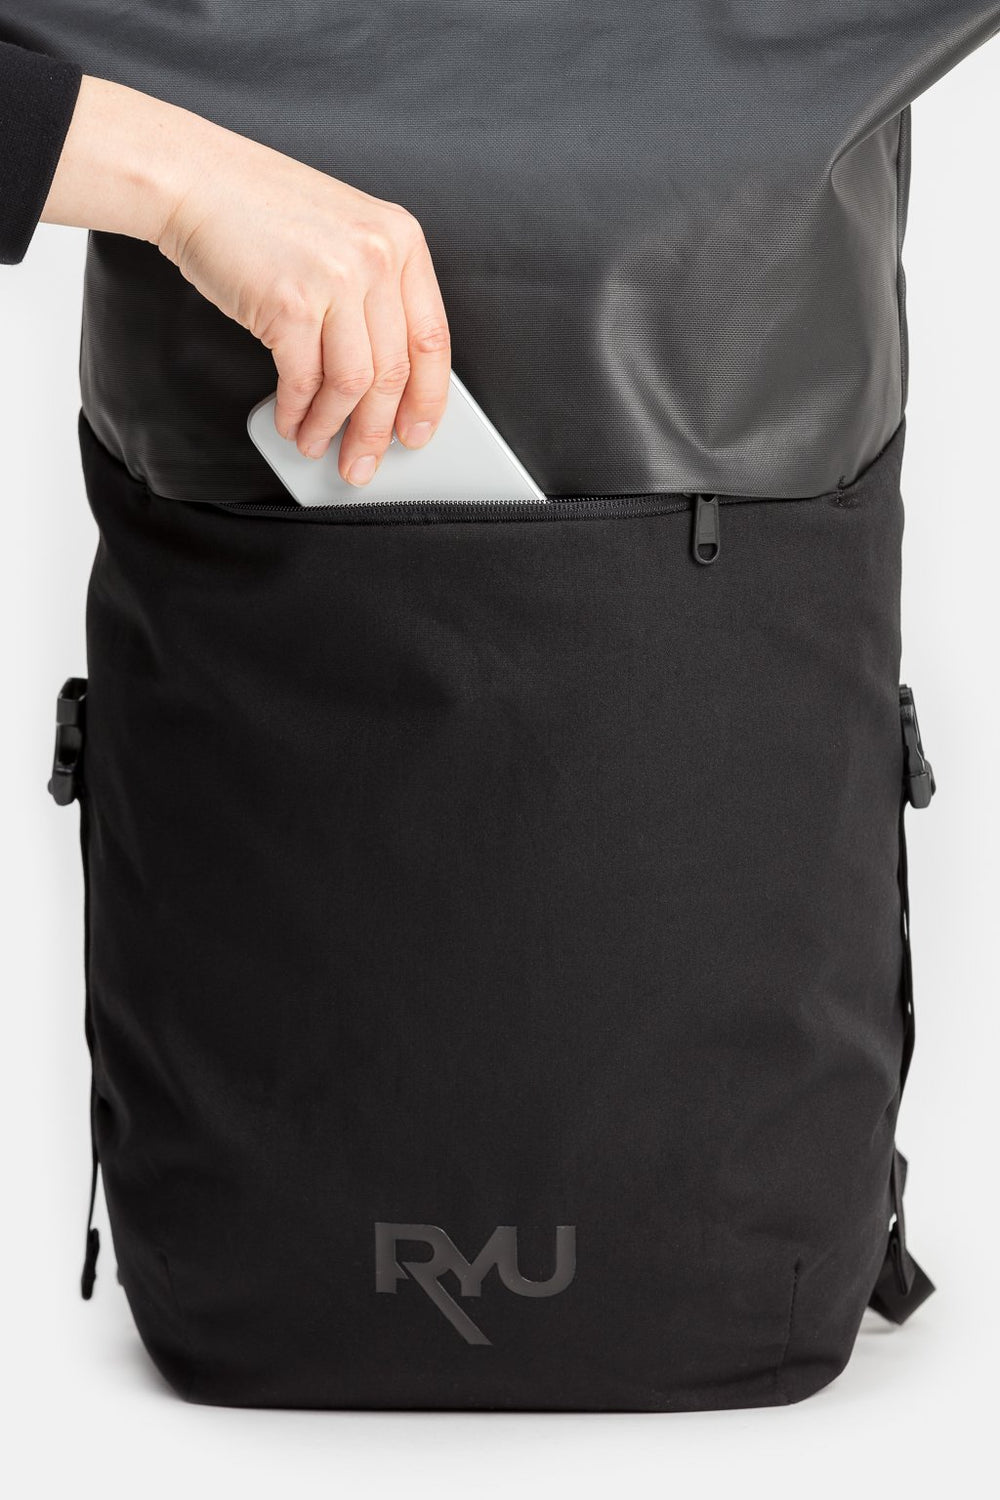 RYU Bags Roll Top Pack 23L-29.5L in Black